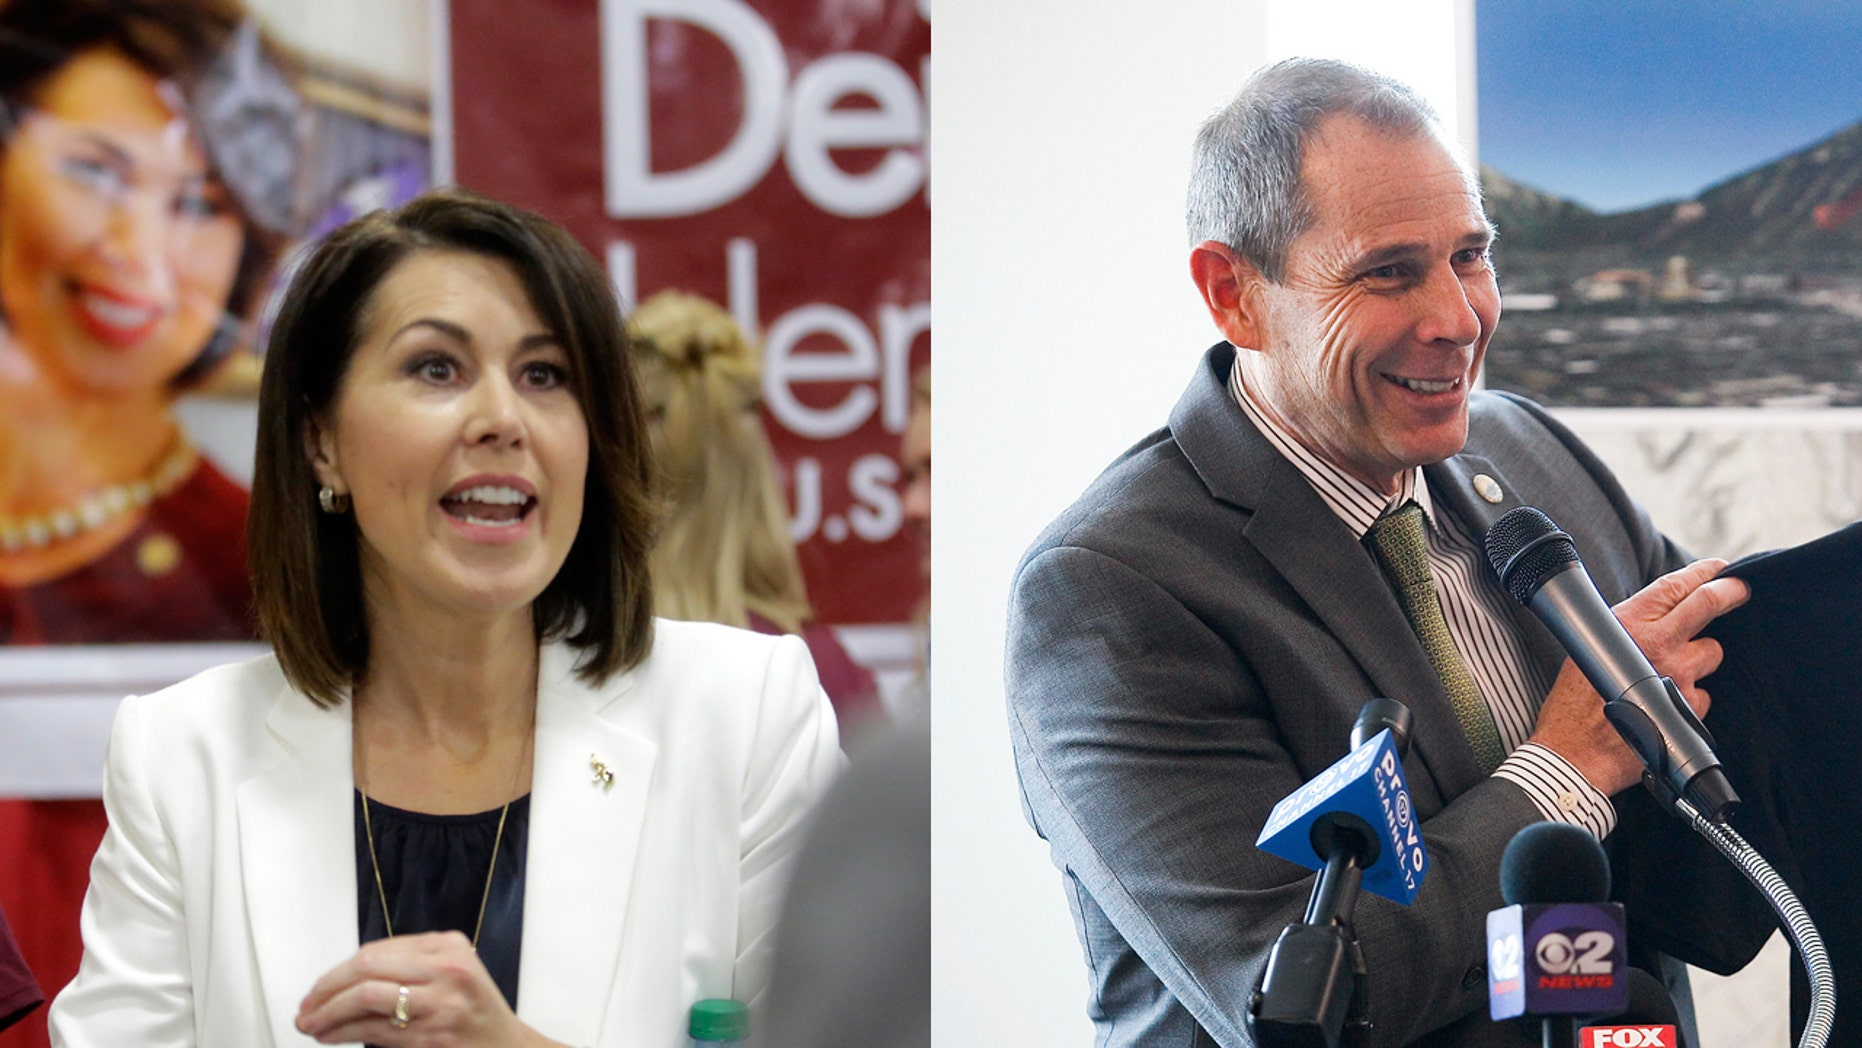 Sen. Deidre Henderson (left) speaks during the Utah GOP Convention, in Sandy, Utah in this May 20, 2017 photo. Provo Mayor John Curtis (right) speaks during a news conference in Provo, Utah in this April 29, 2014